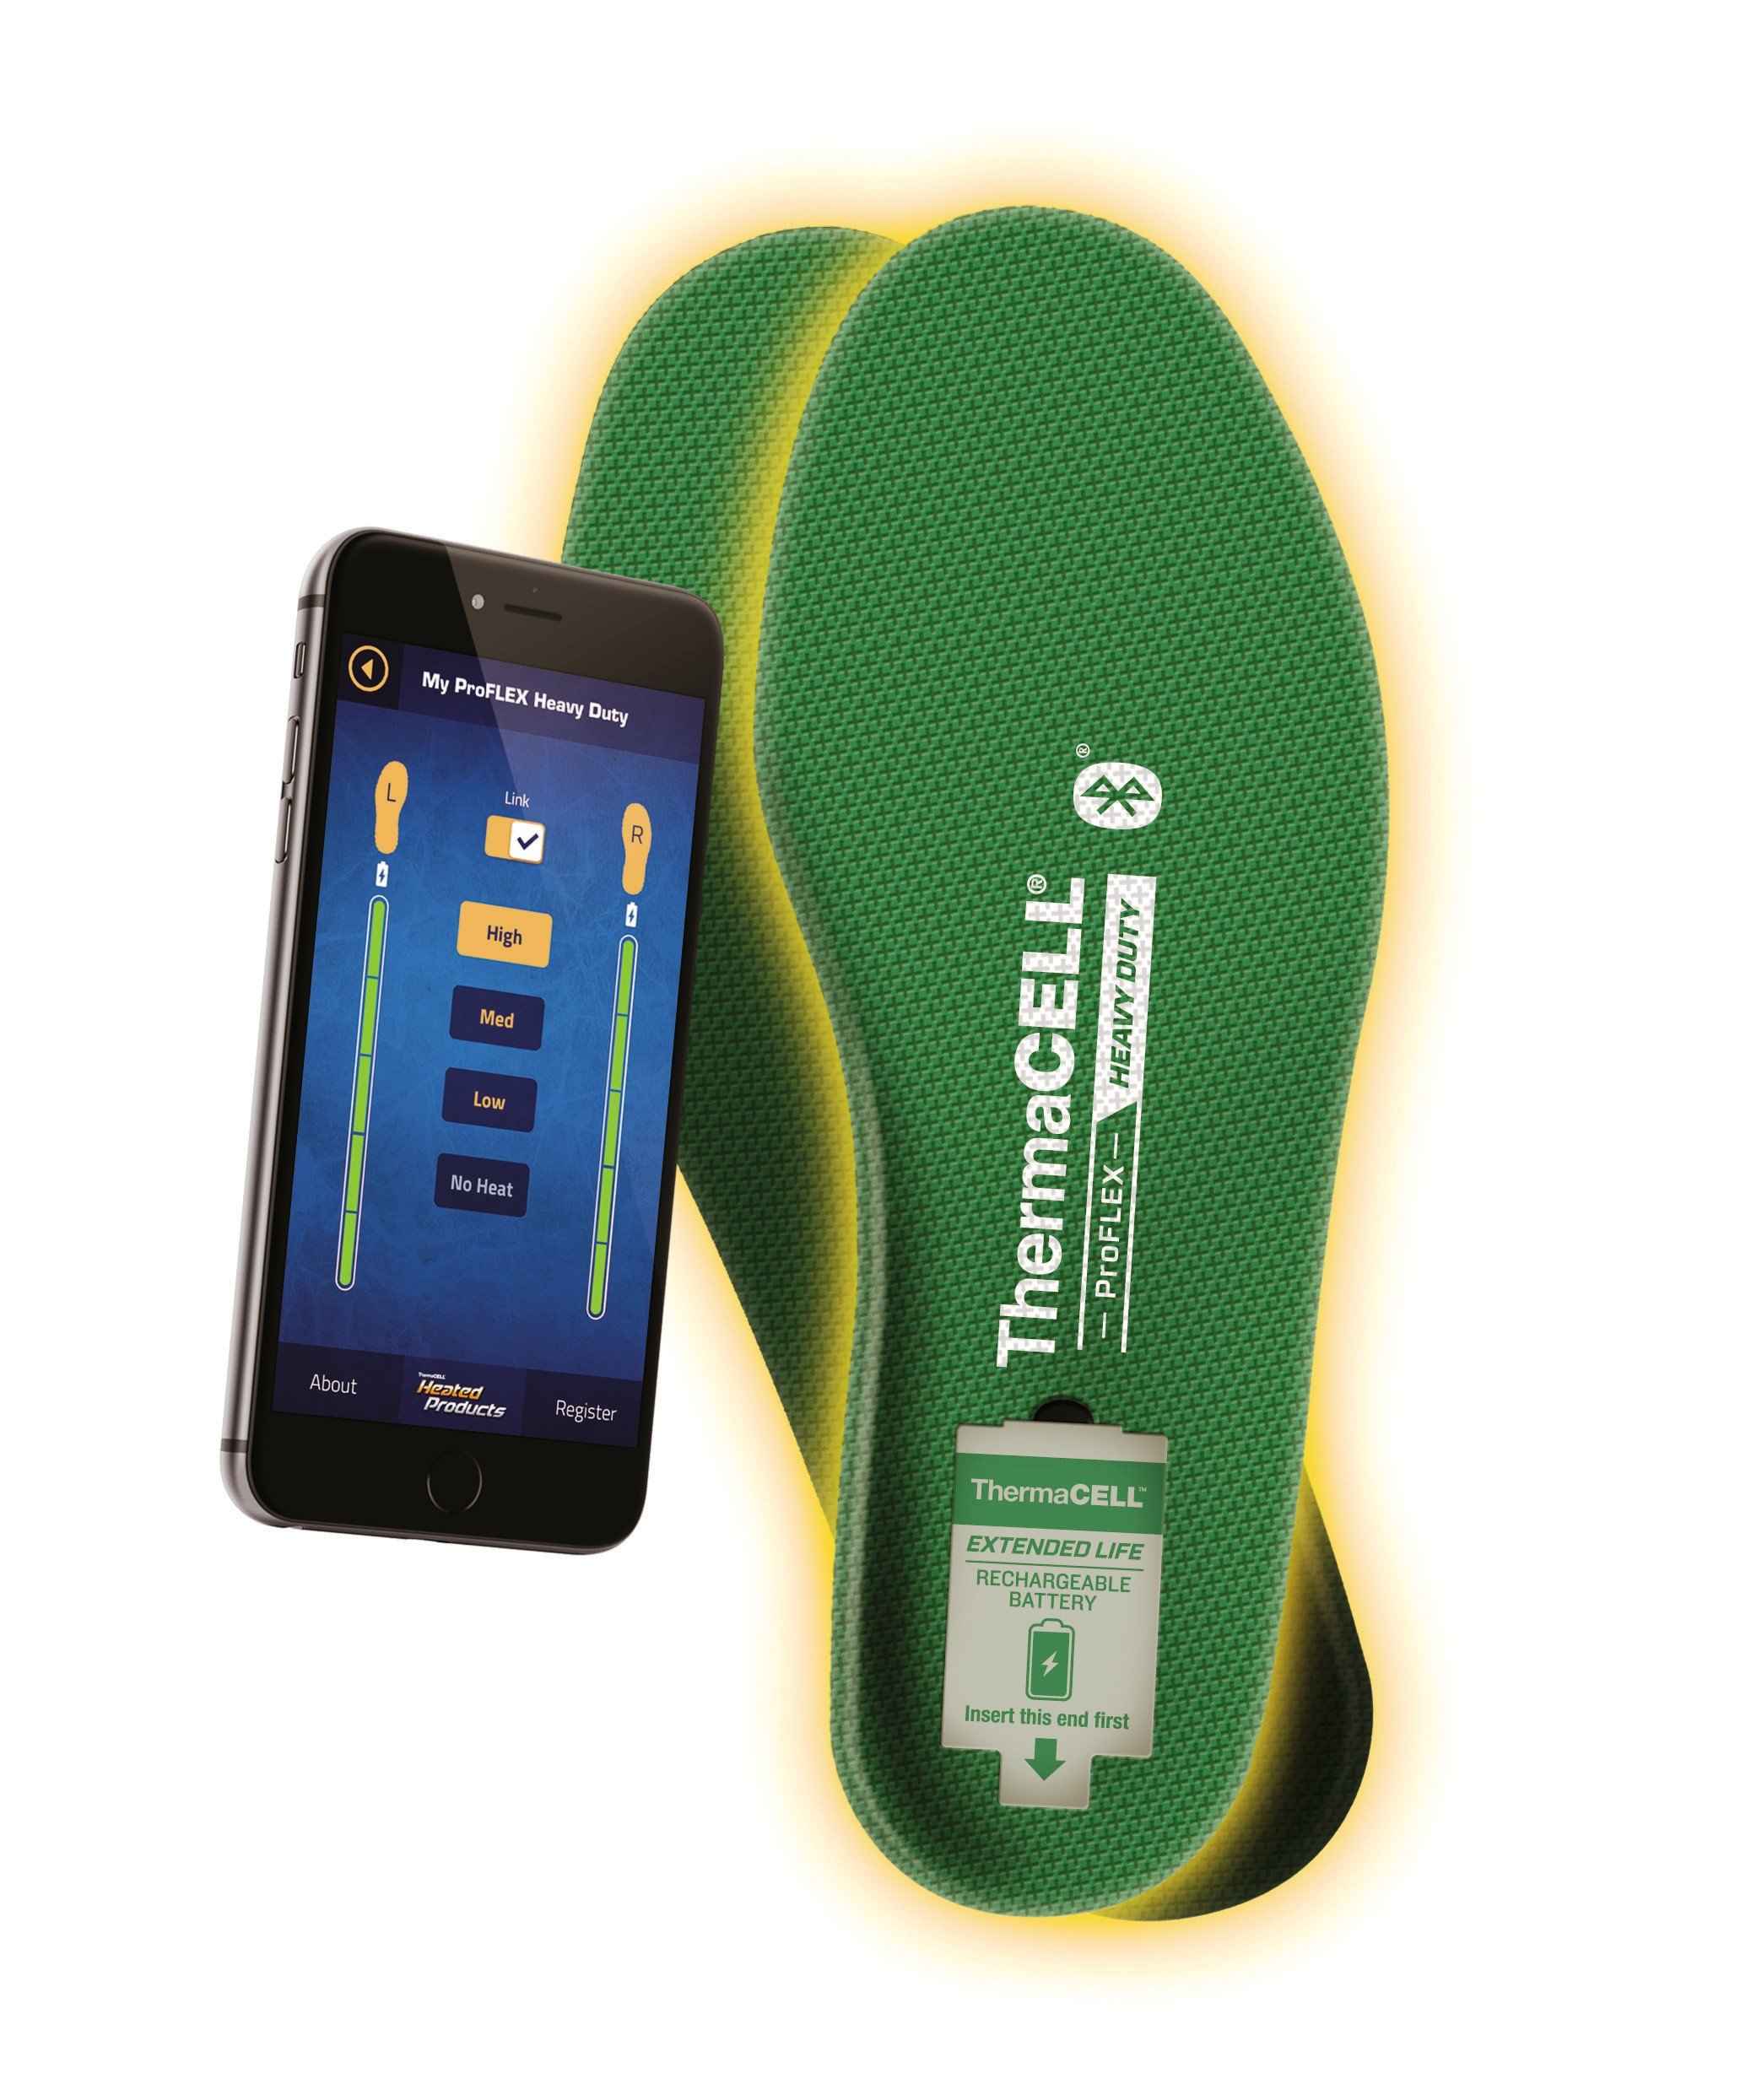 ThermaCELL Proflex Heavy Duty Heated Shoe Insoles with Bluetooth Compatibility, XL by Thermacell (Image #2)